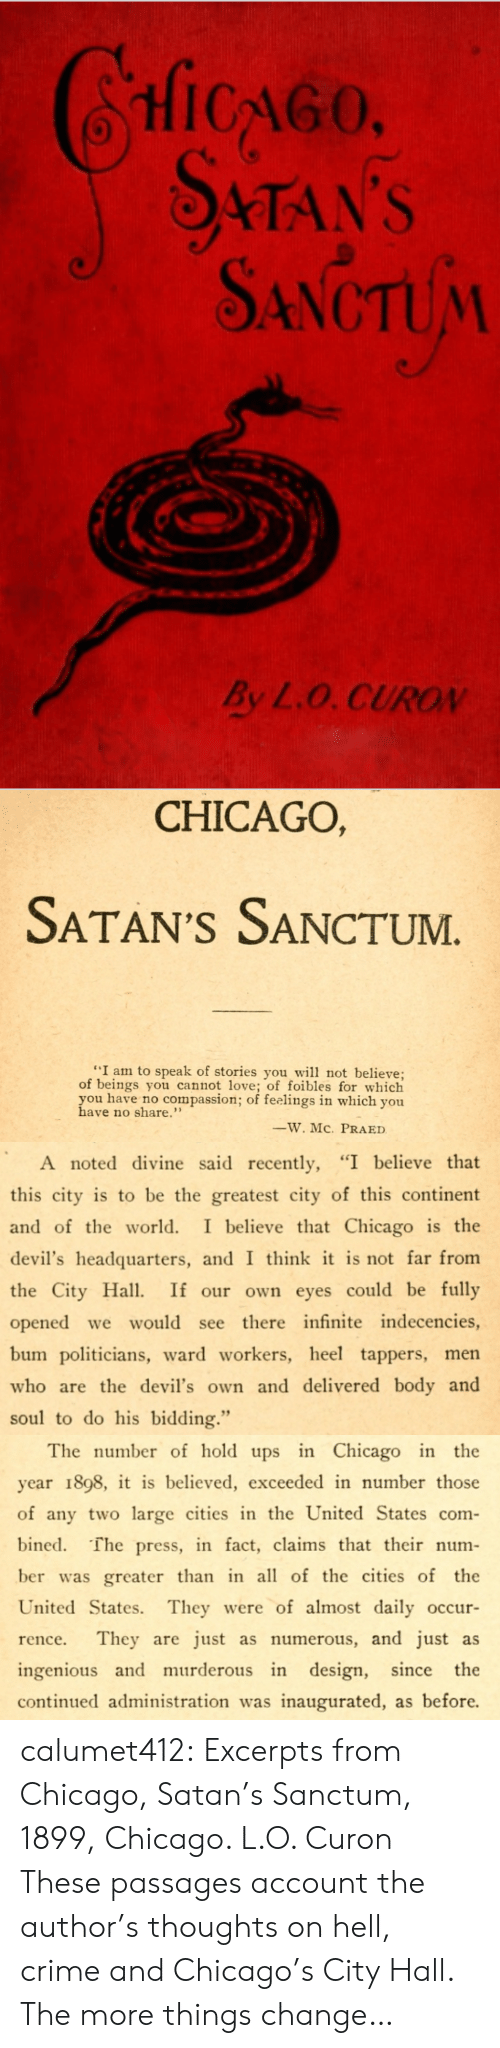 "city hall: HicGo  STAN'S  SANCTUM  By L.O. CUROV   CHICAGO,  SATAN'S SANCTUM  ""I am to speak of stories you w not believe;  of beings you cannot love; of foibles for which  you have no compassion; of feelings in which you  have no share.""  ーW.MC.  PRA ED   A noted divine said recently, ""I believe that  this city is to be the greatest city of this continent  and of the world. I believe that Chicago is the  devil's headquarters, and I think it is not far from  the City Ha If our own eyes could be fully  opened we would see there infinite indecencies,  bum politicians, ward workers, heel tappers, men  who are the devil's own and delivered body and  soul to do his bidding.""   The number of hold ups in Chicago in the  year 1898, it is believed, exceeded in number those  of any two large cities in the United States com-  bined. The press, in fact, claims that their num-  ber was greater than in all of the cities of the  United States. They were of almost daily occur  rence. They are just as numerous, and just as  ingenious and murderous in design, since the  continued administration was inaugurated, as before. calumet412:  Excerpts from Chicago, Satan's Sanctum, 1899, Chicago. L.O. Curon These passages account the author's thoughts on hell, crime and Chicago's City Hall. The more things change…"